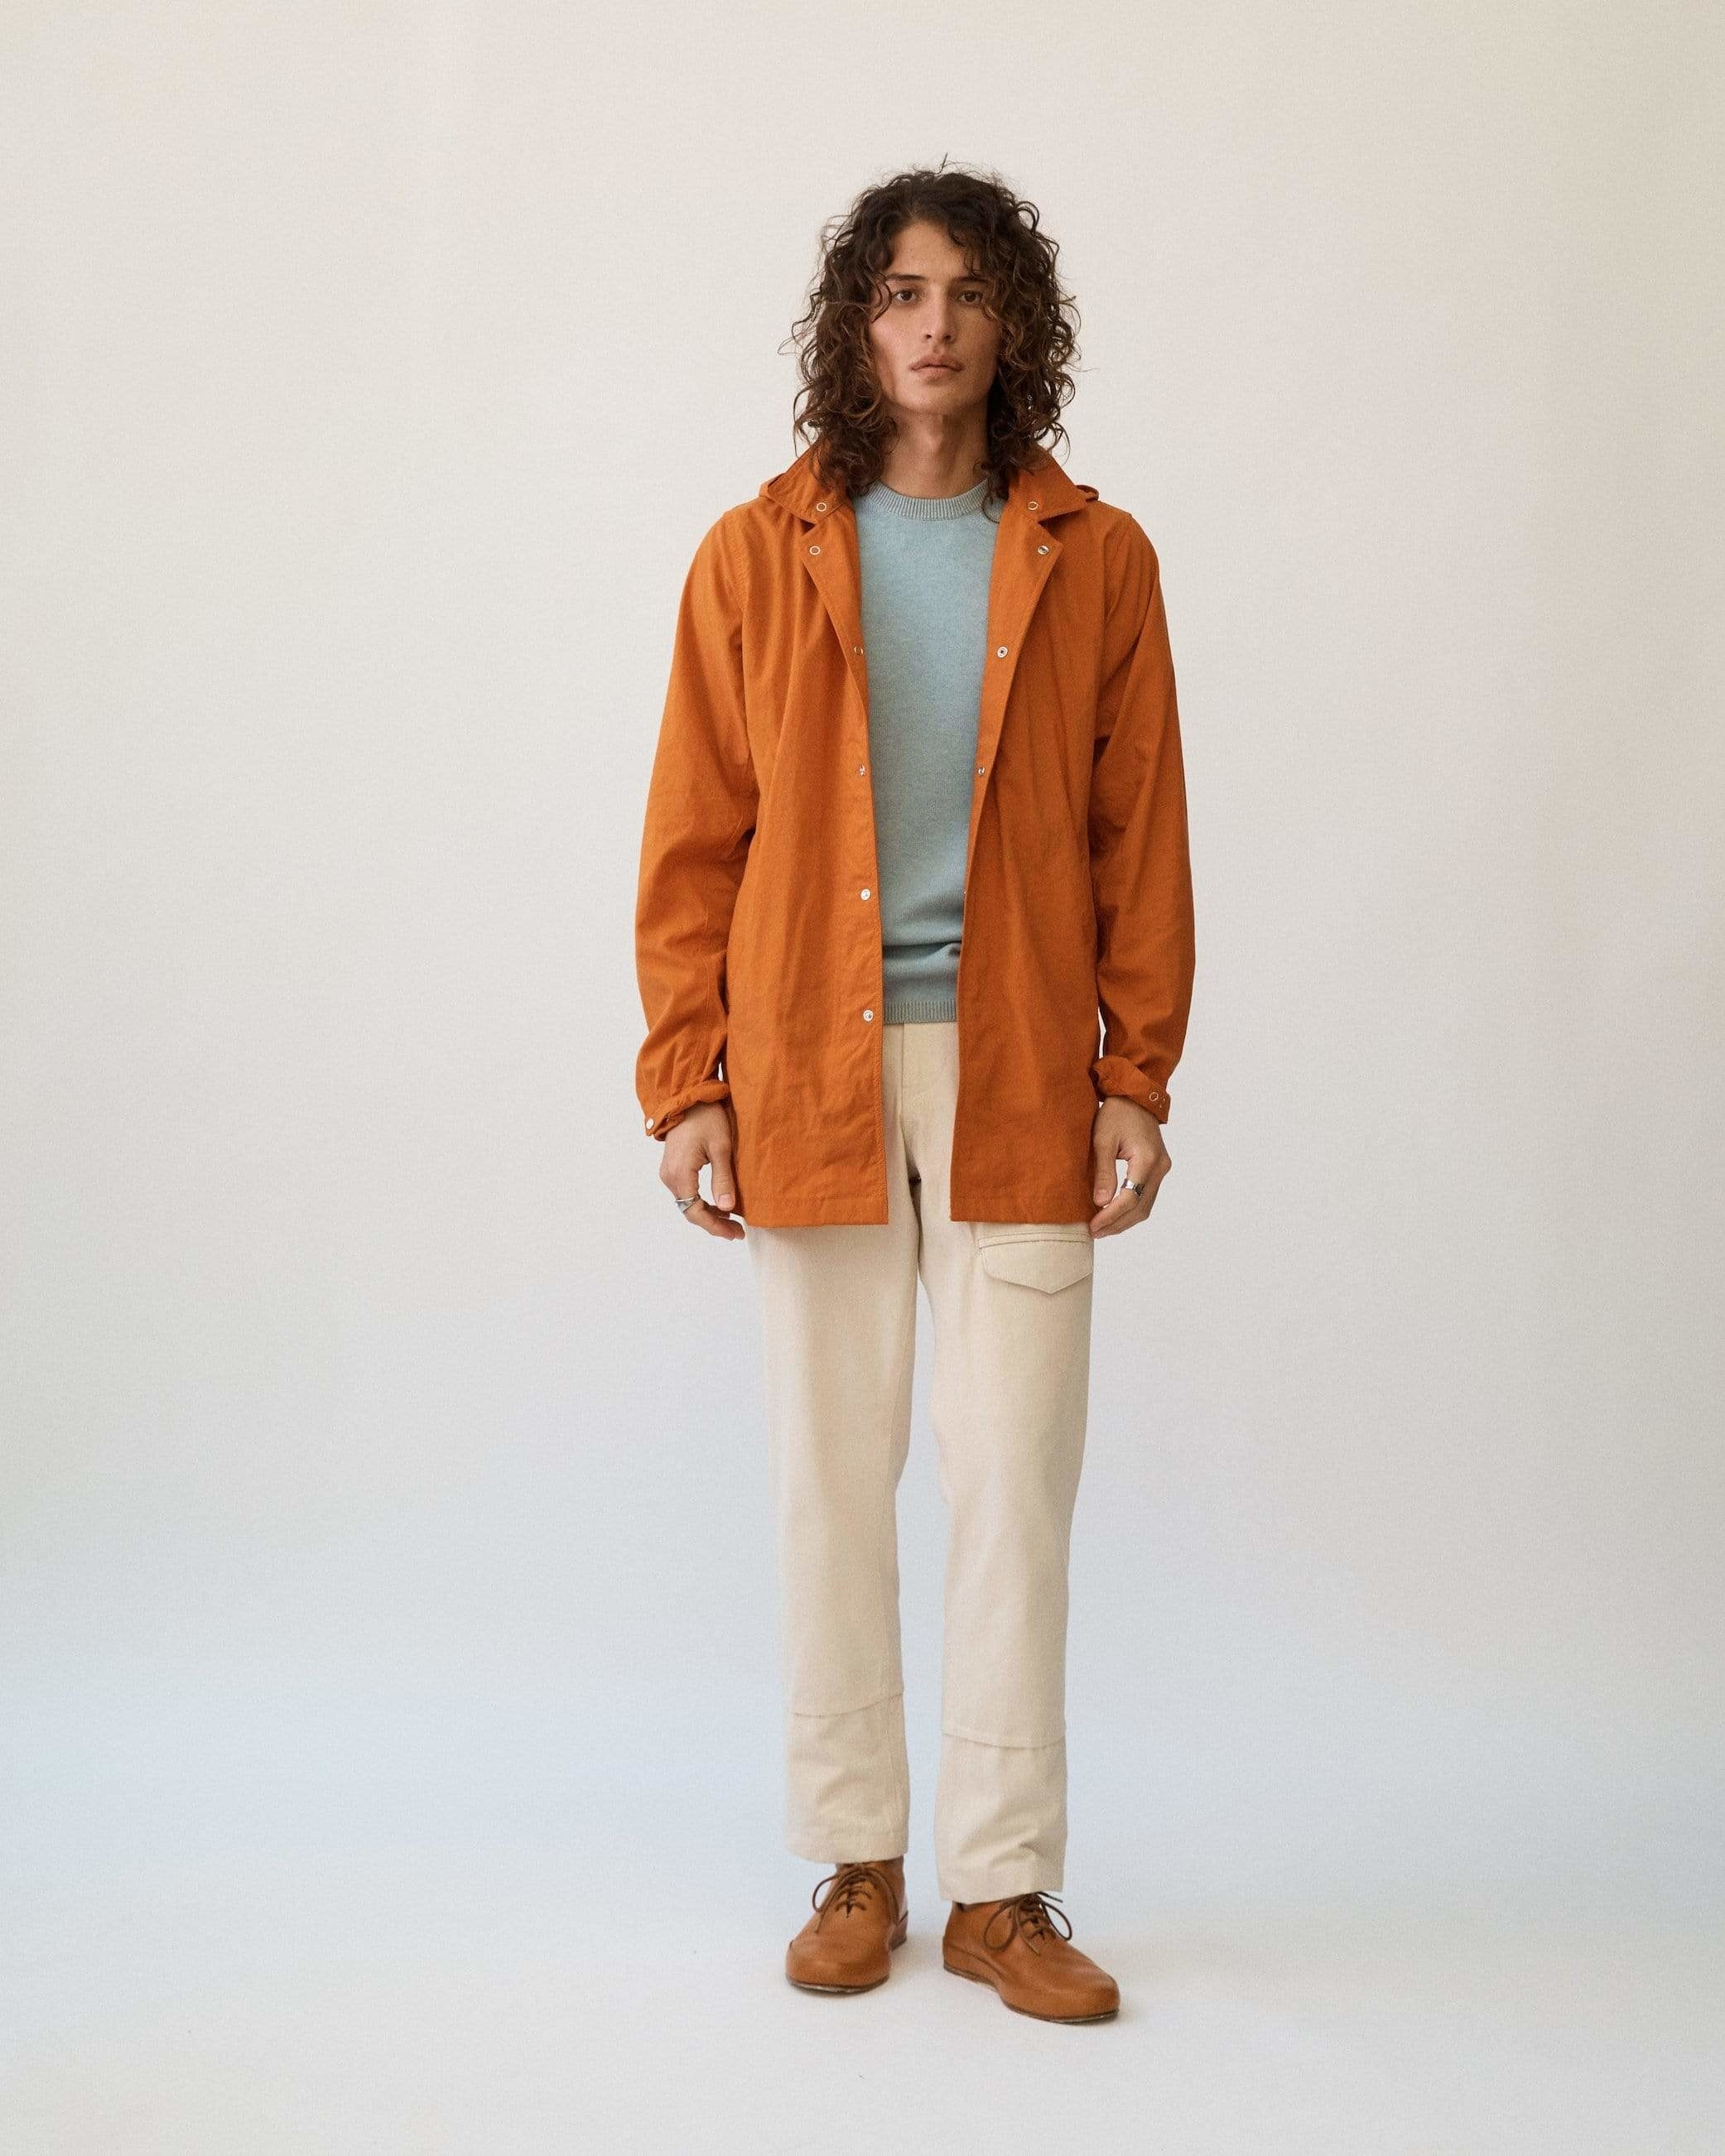 Model wearing Corridor natural dye nylon rainjacket in orange